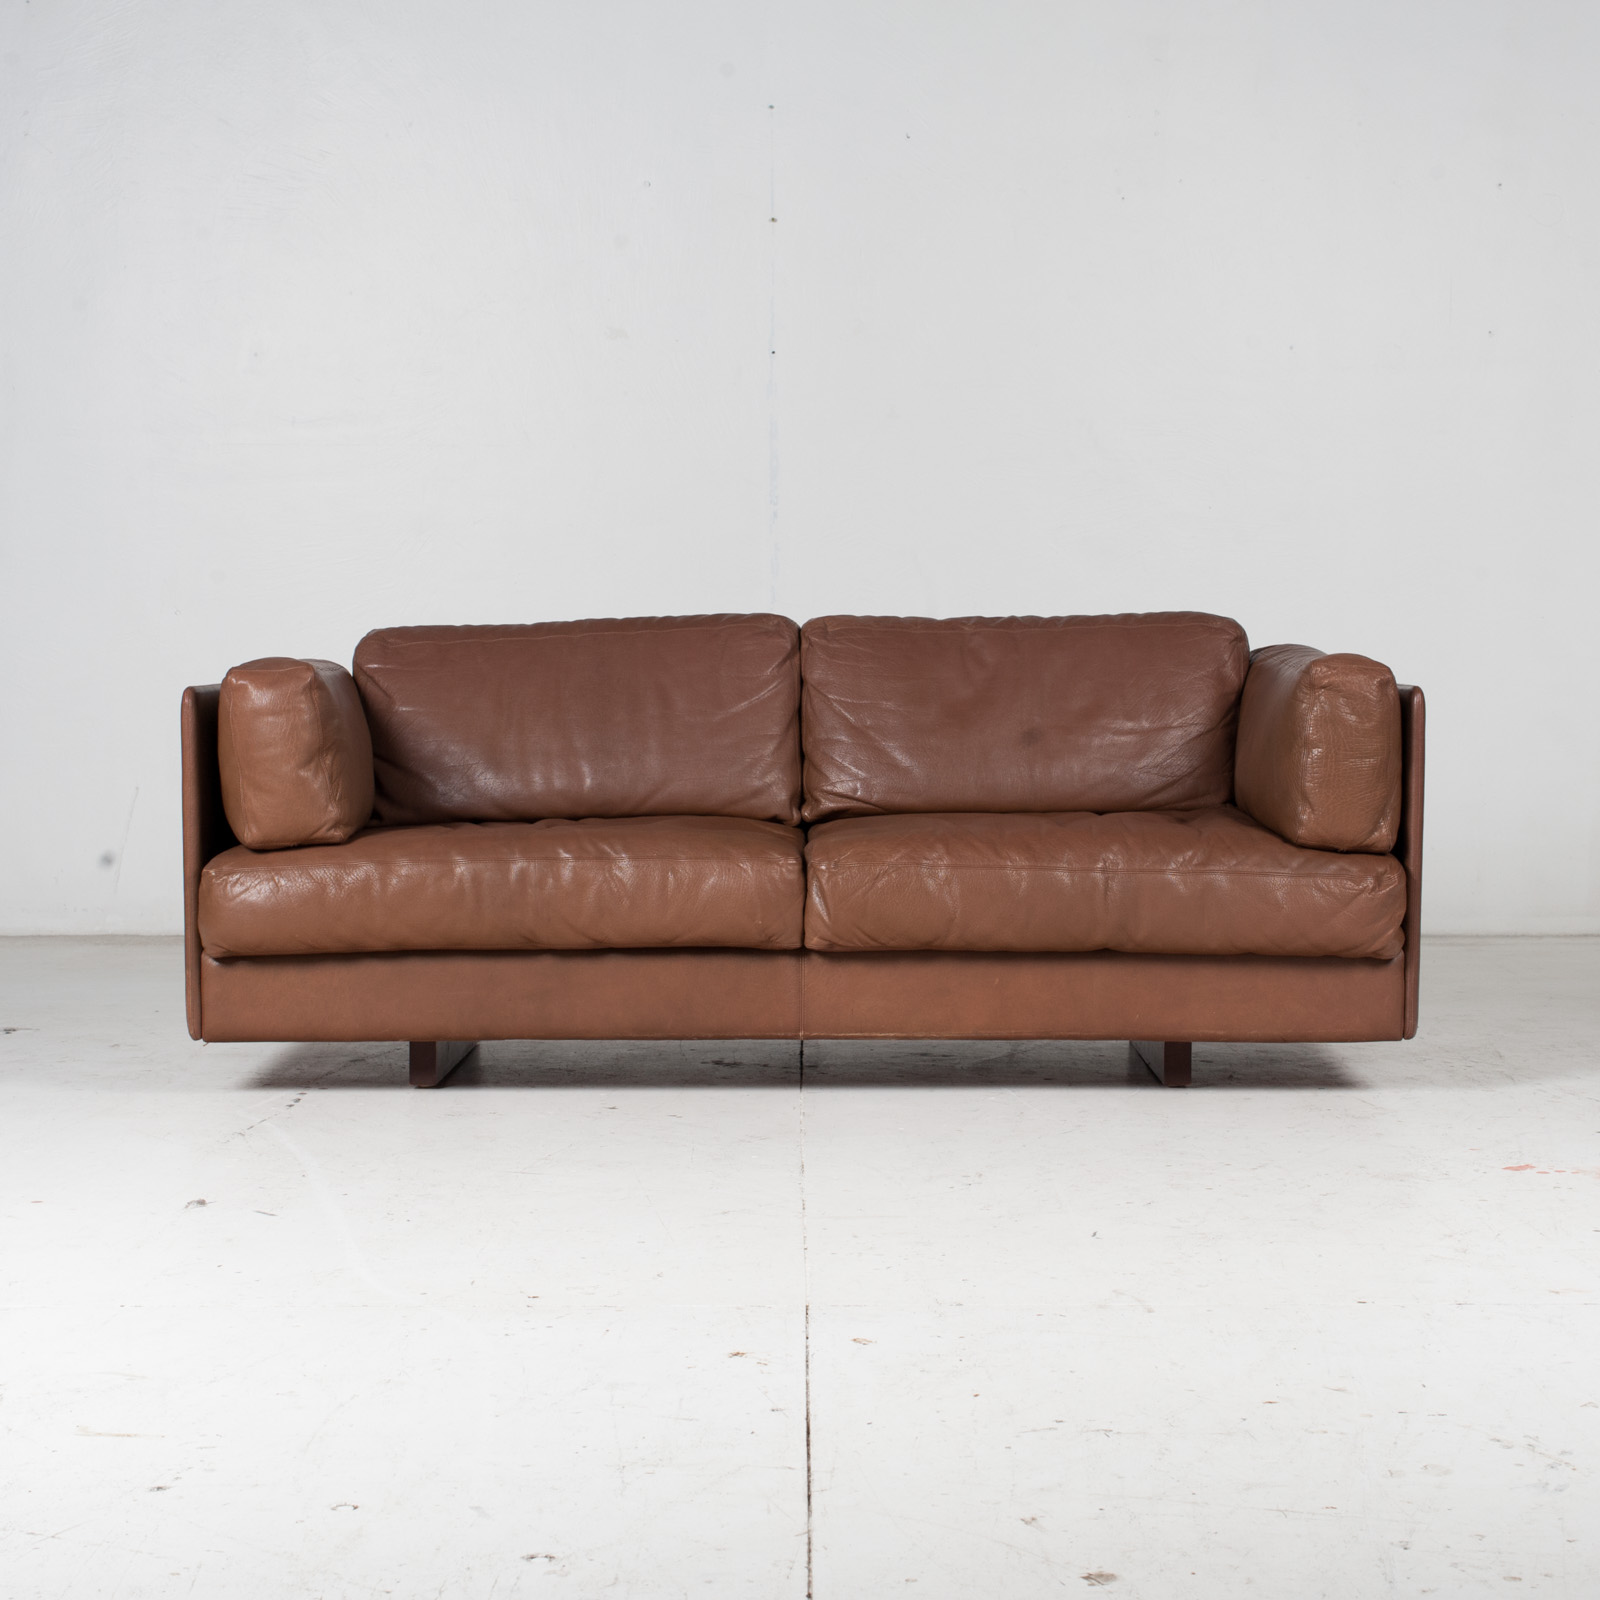 2 Seater Sofa In Brown Leather, 1960s, Switzerland 1